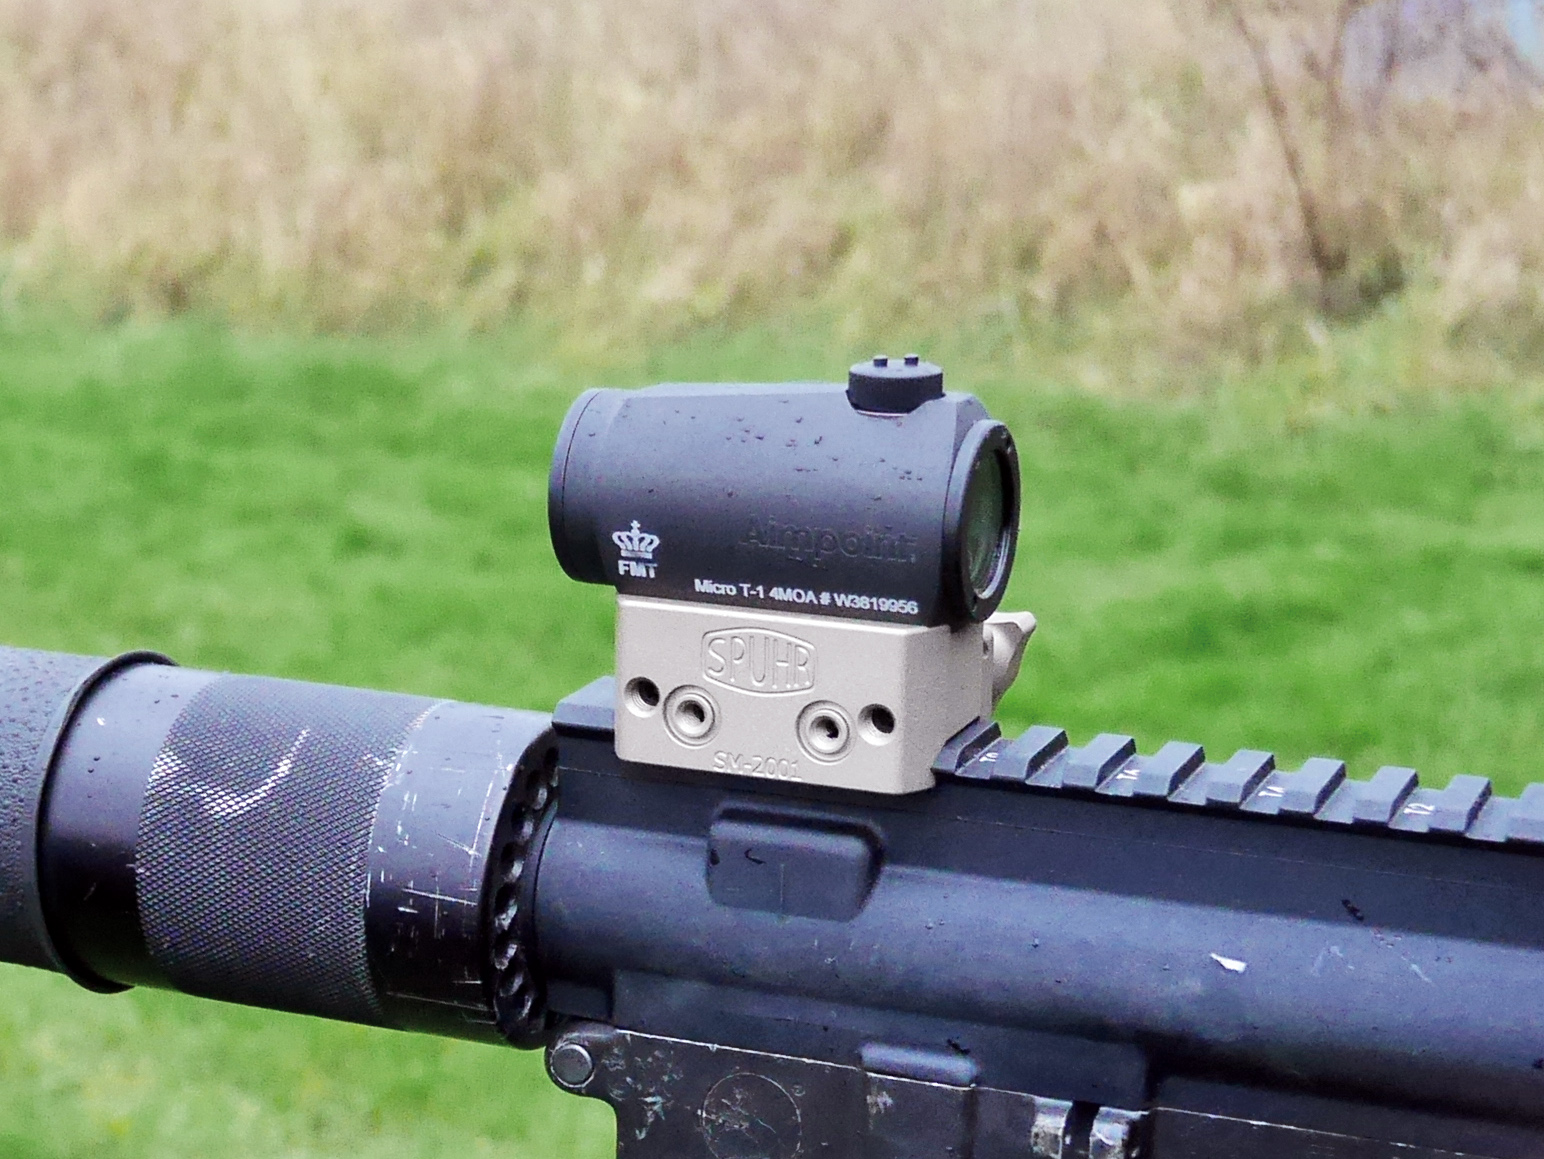 Aimpoint on carbine - SM-2001